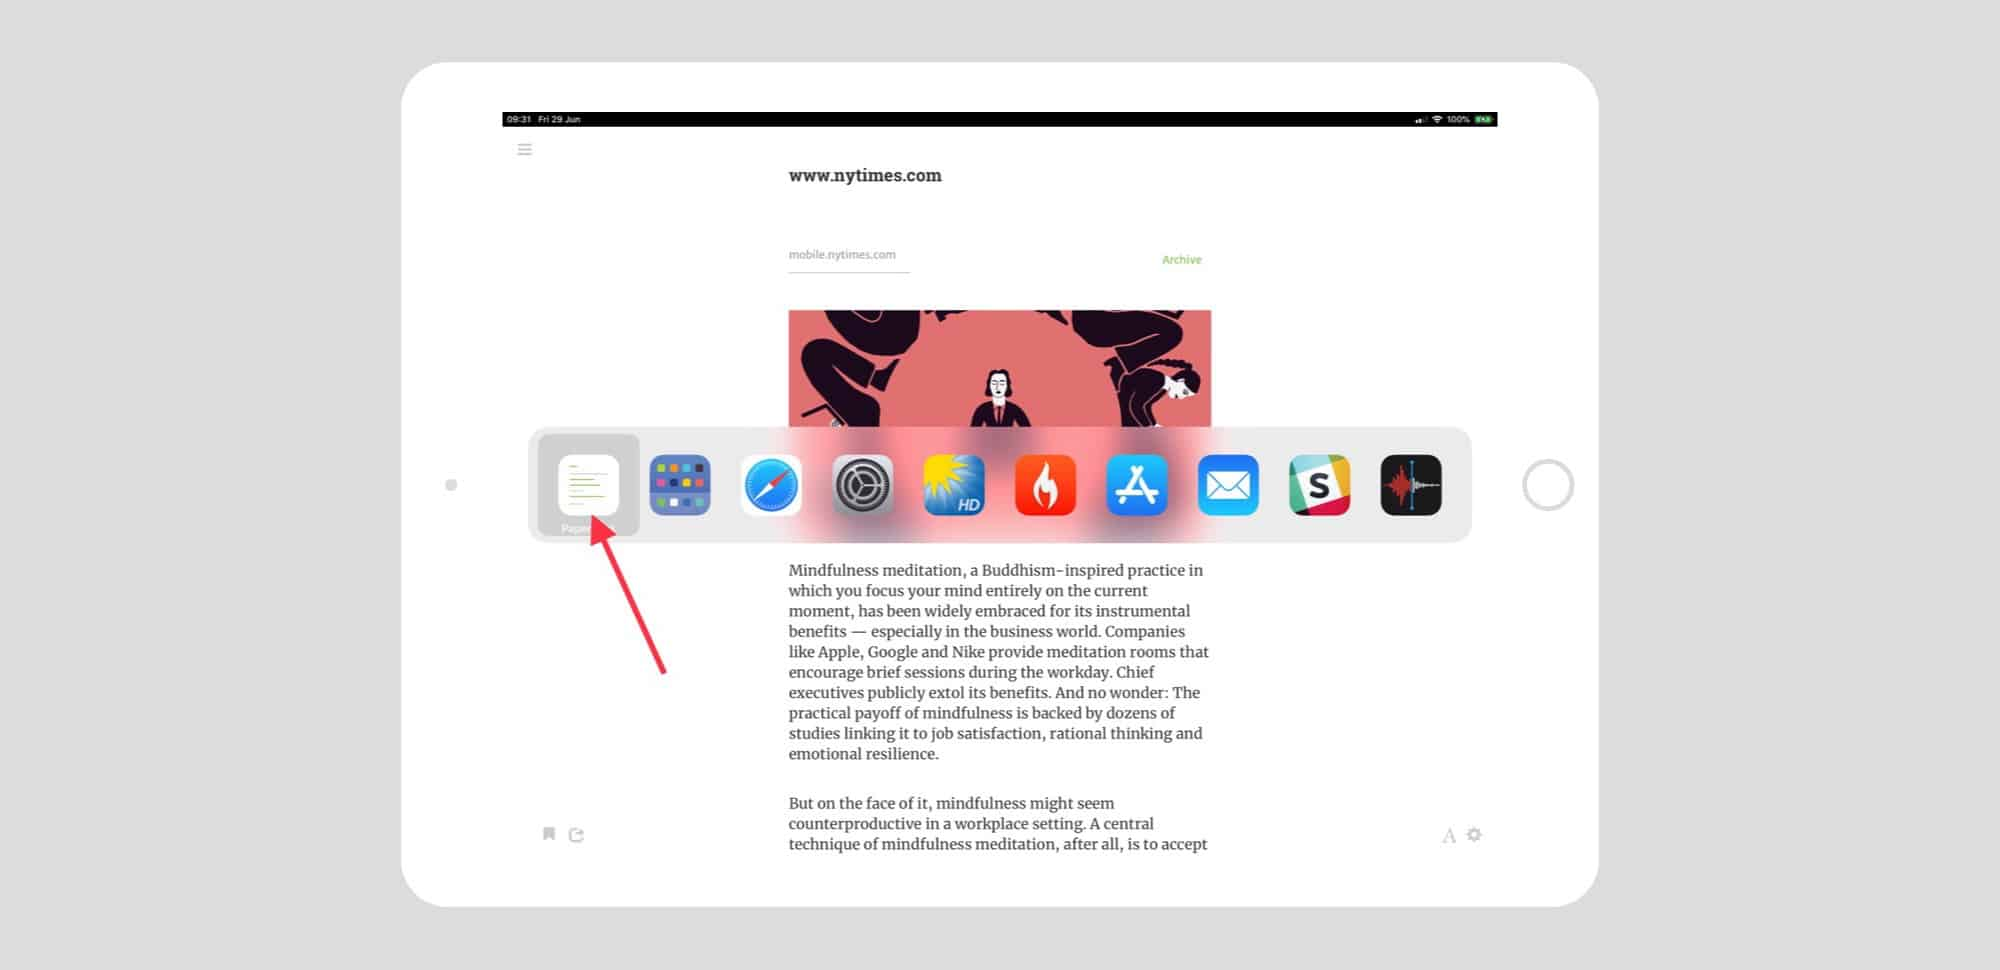 Paperback is a bookmarked website, right there in the App Switcher!